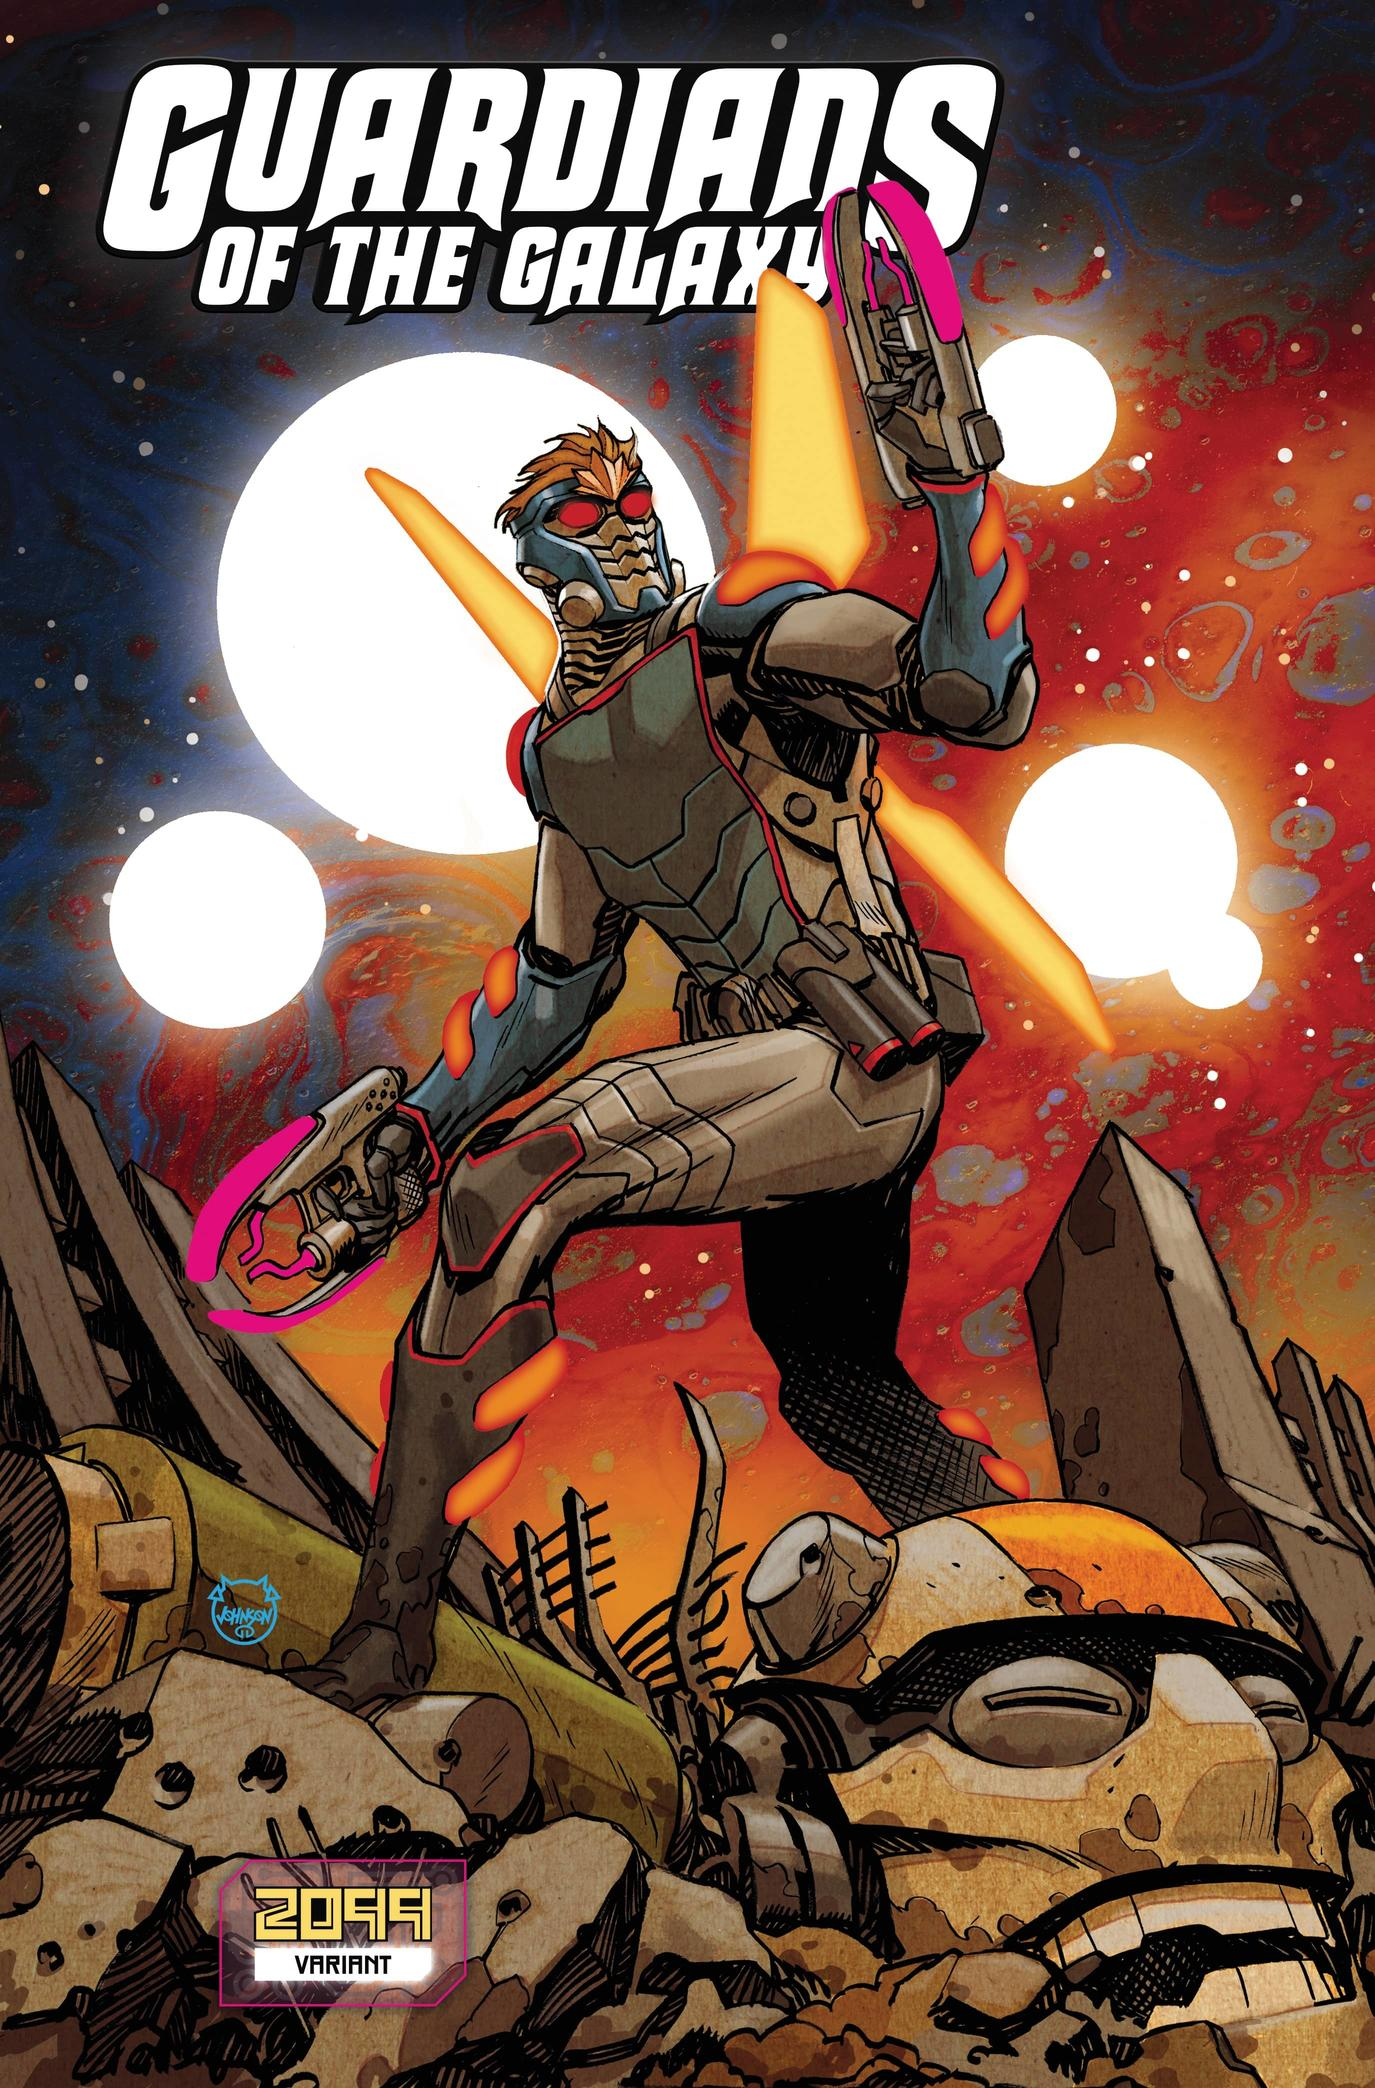 GUARDIANS OF THE GALAXY #11 variant art by Dave Johnson